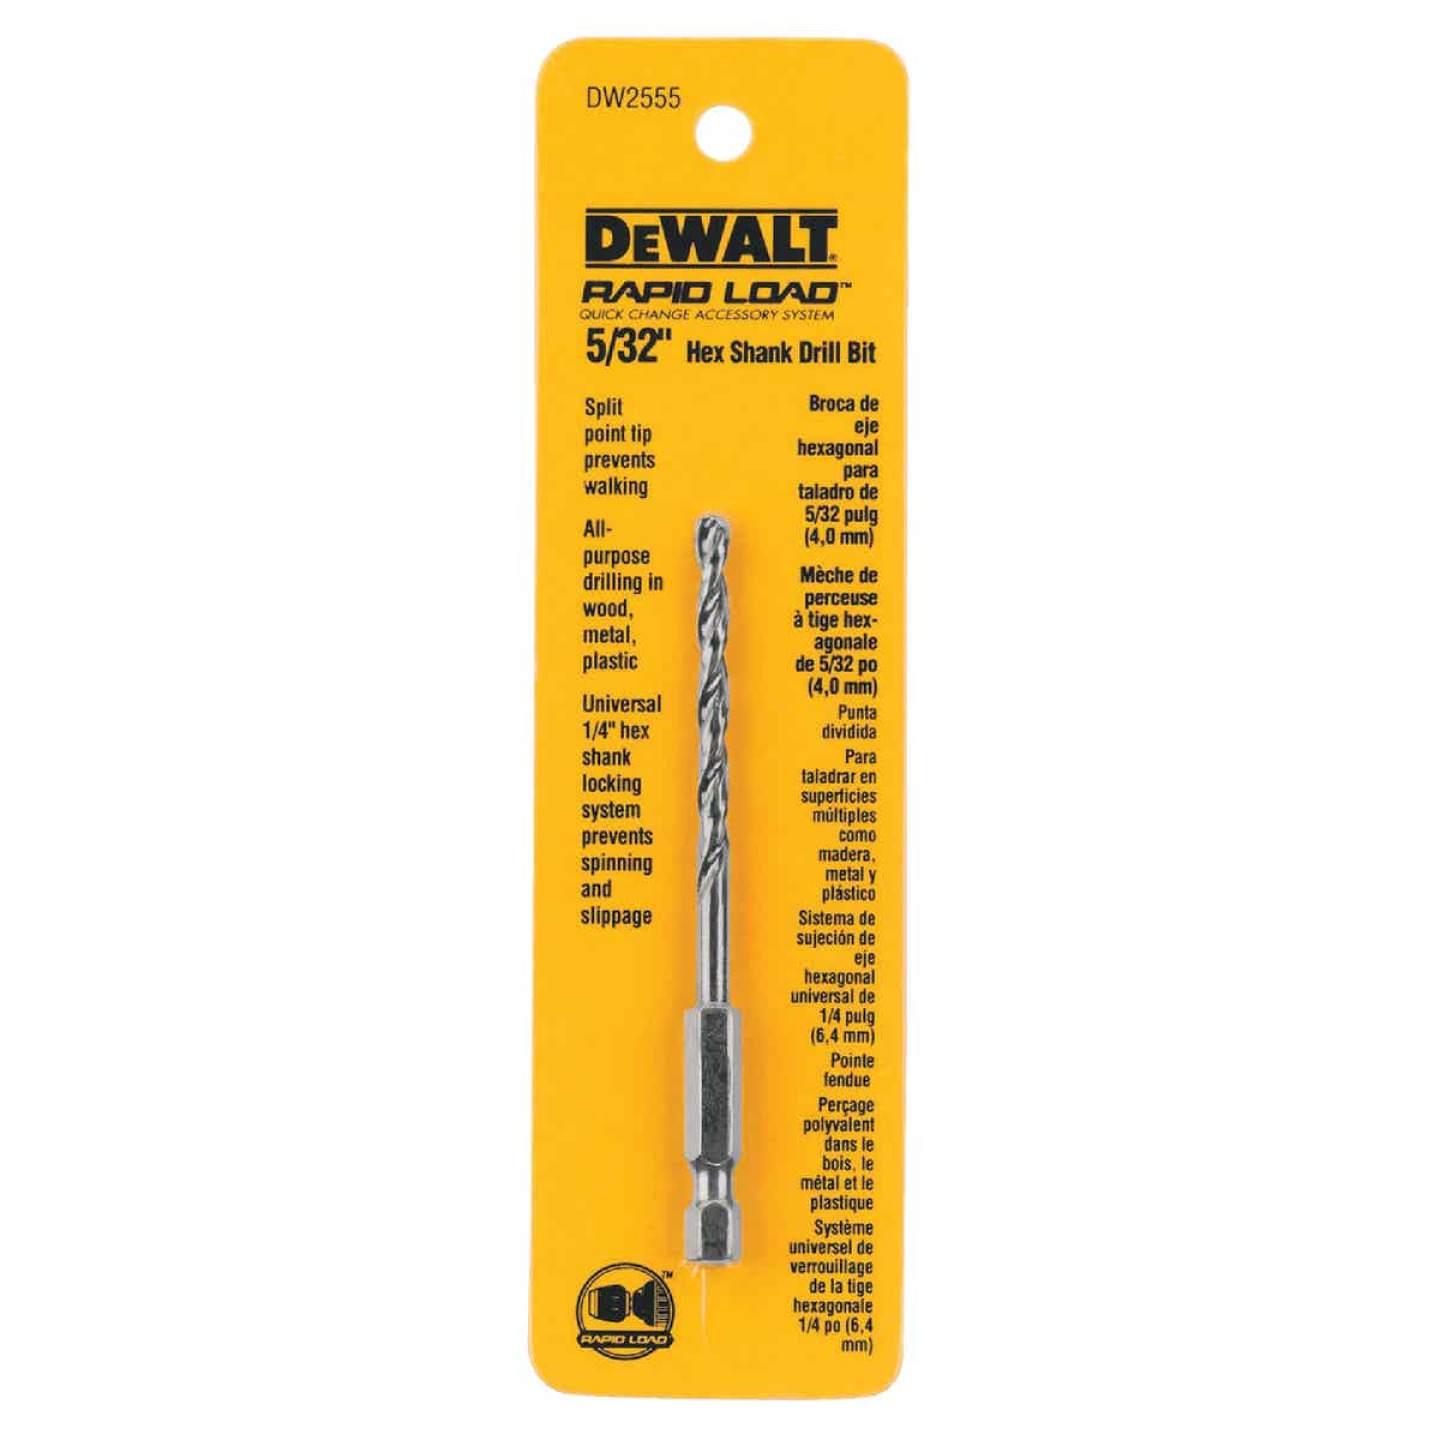 DeWalt Rapid Load 5/32 In. Black Oxide Hex Shank Drill Bit Image 1